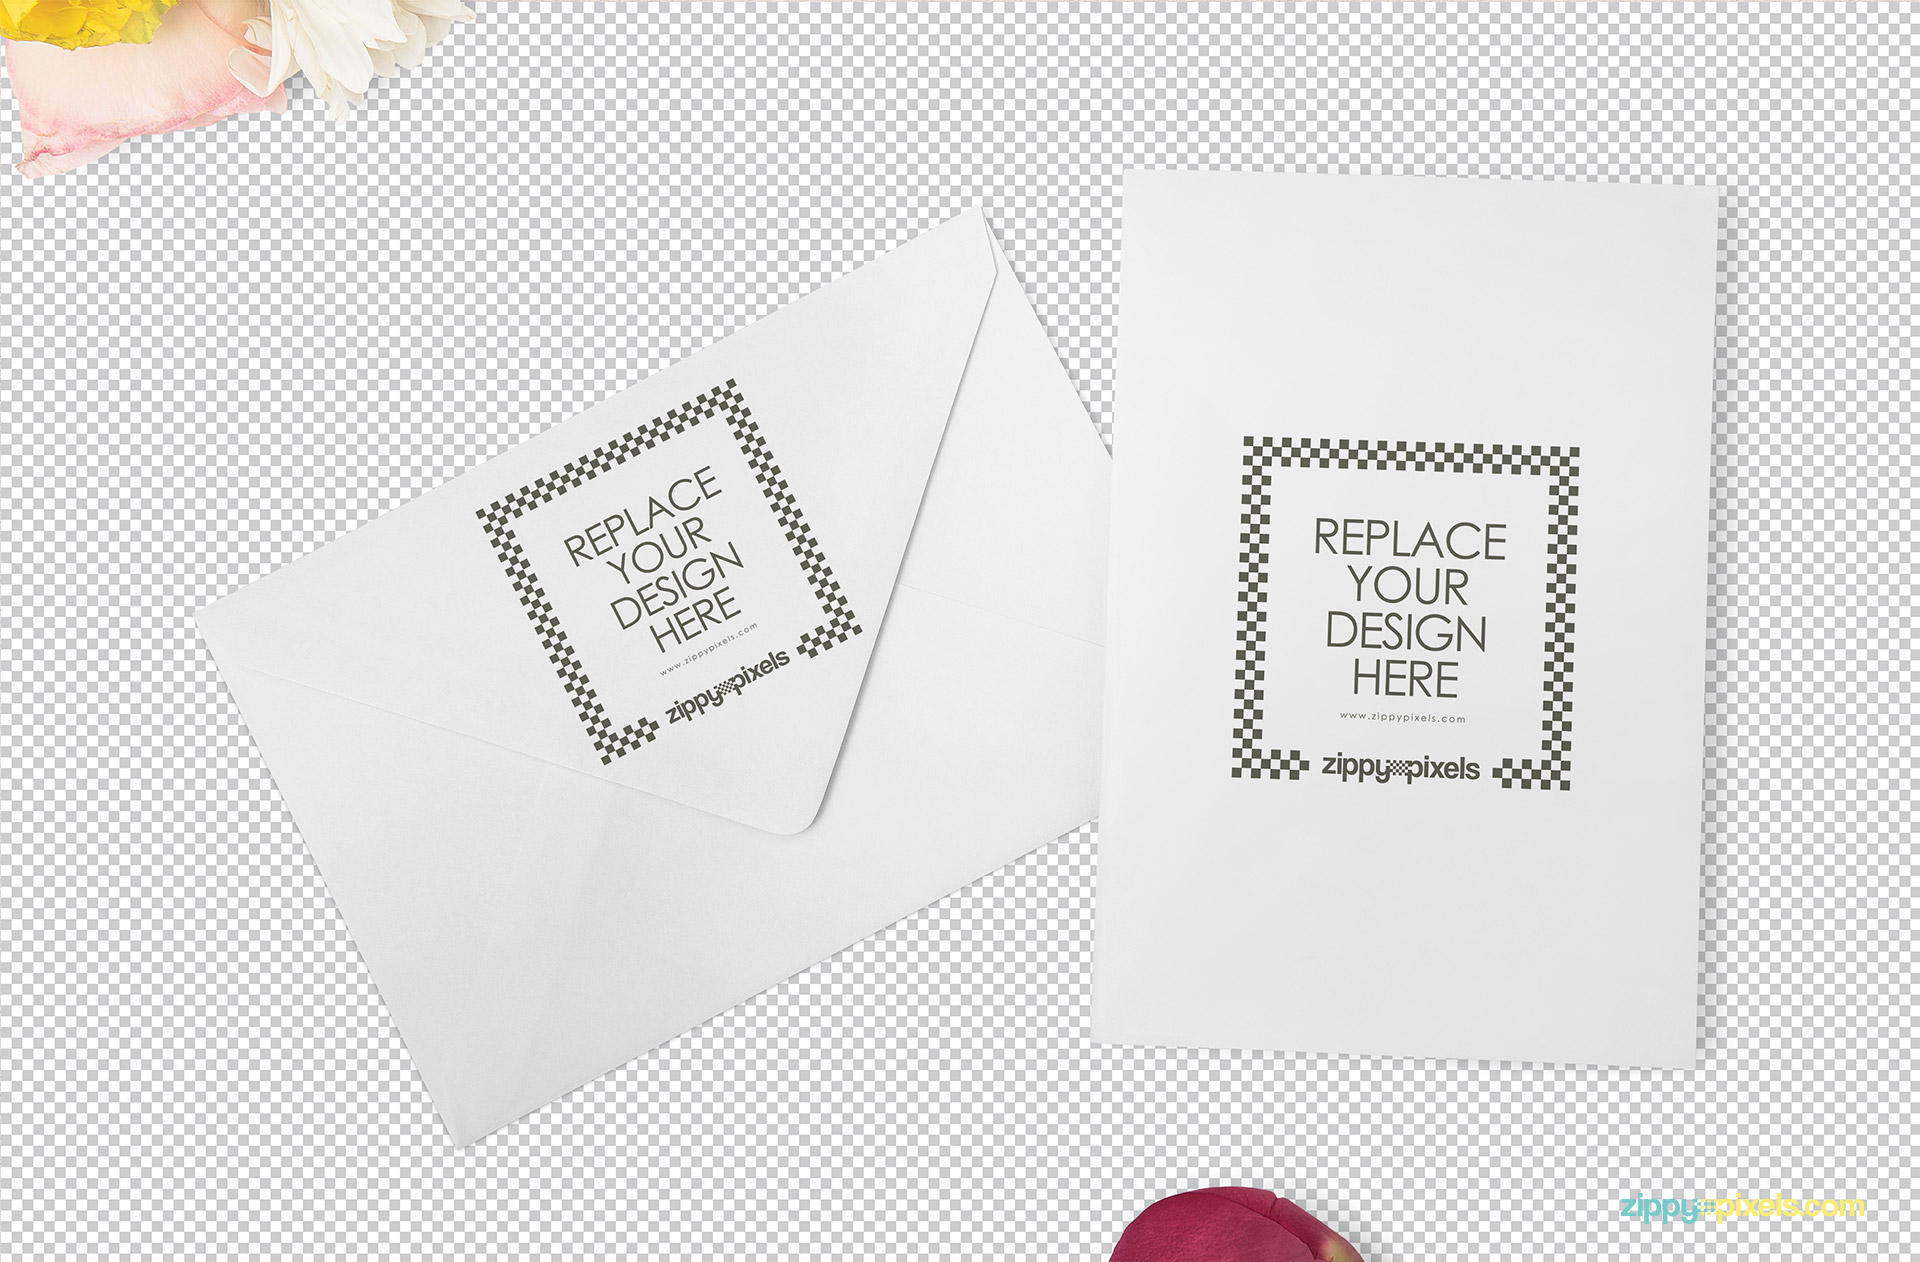 Customizable card and envelope showing replaceable design option.